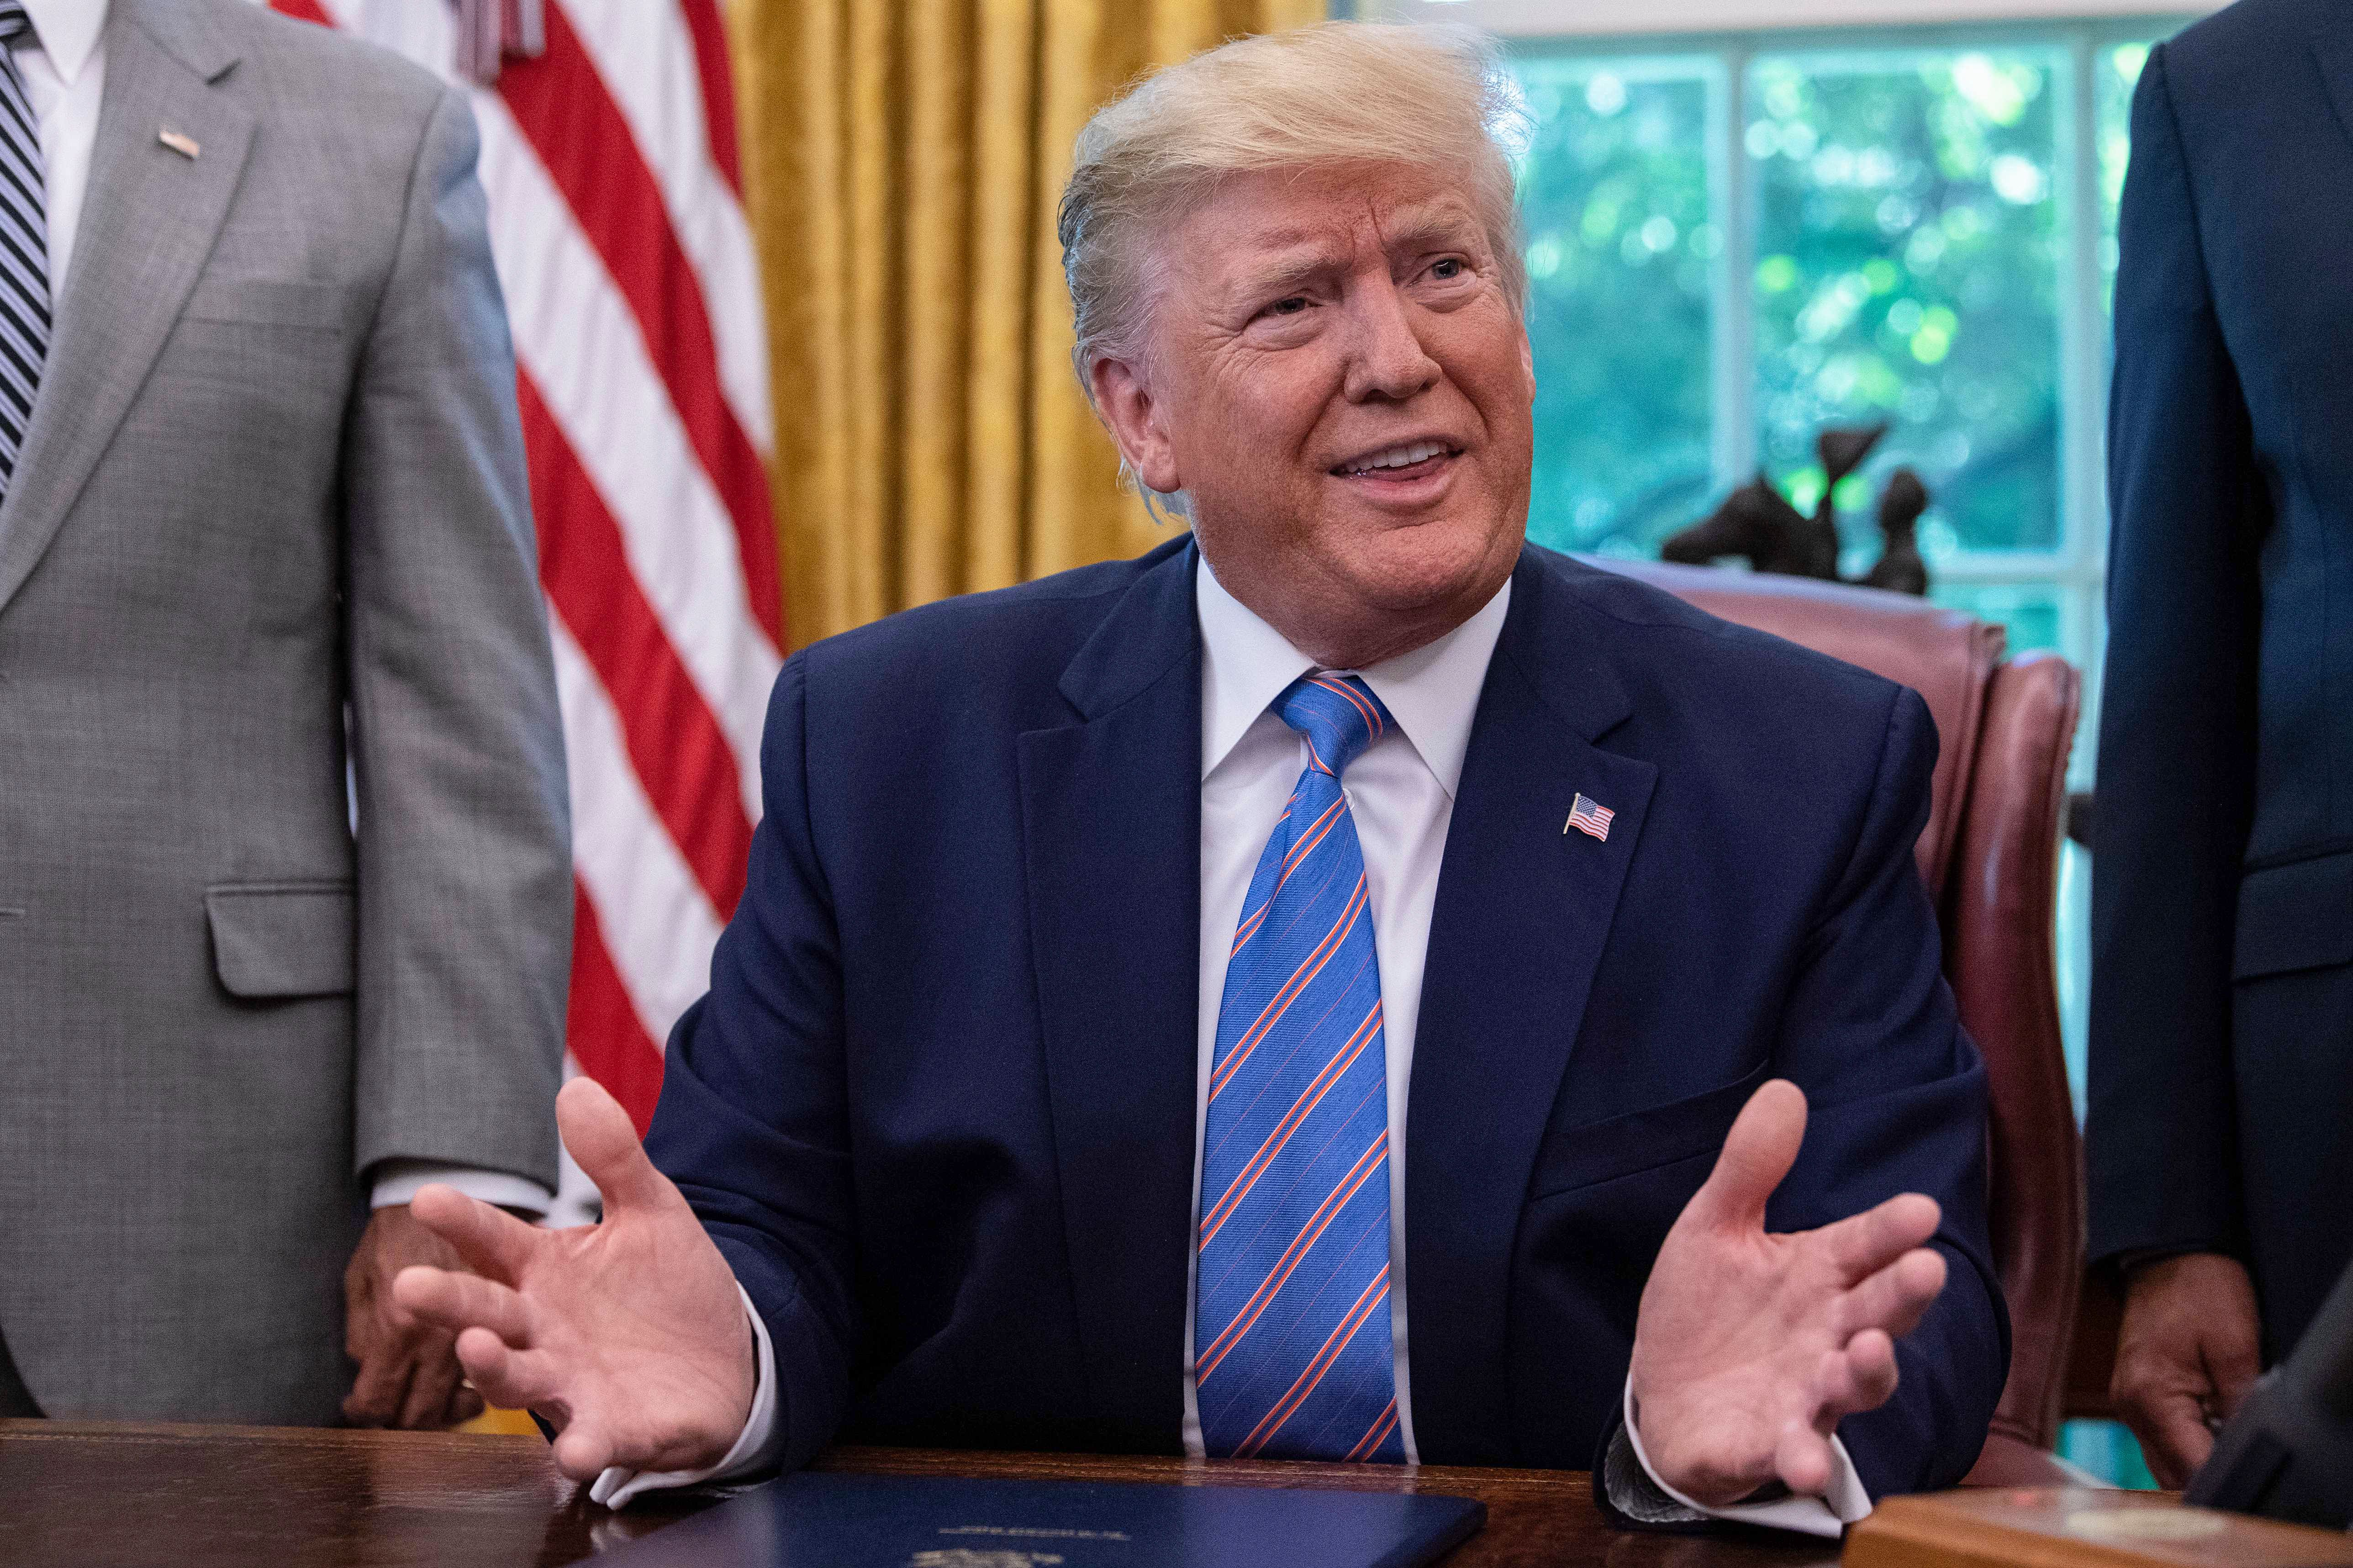 President Donald Trump speaks to the press after signing a bill for border funding legislation on July 1, 2019. (Nicholas Kamm/AFP/Getty Images)